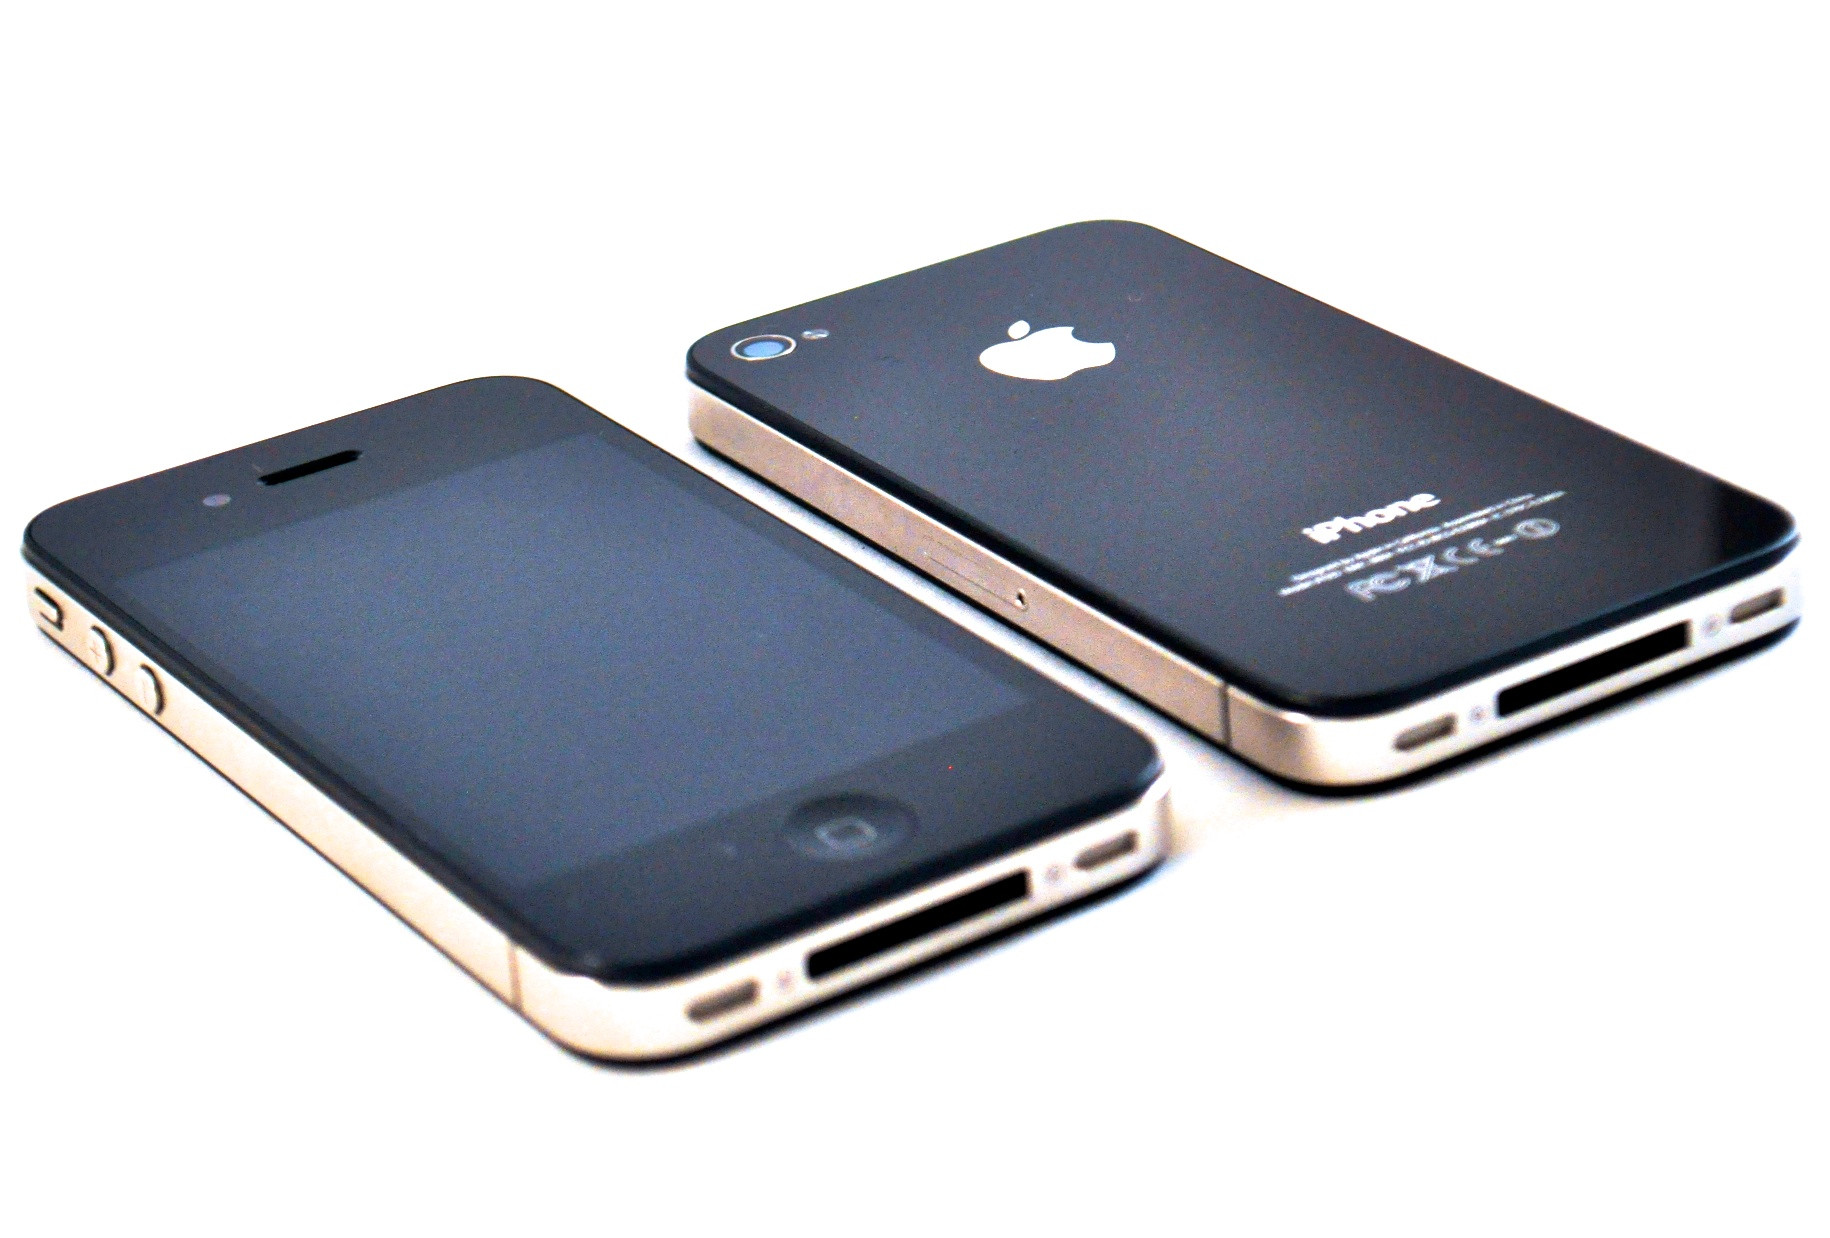 1341930991_iphone4black.jpg